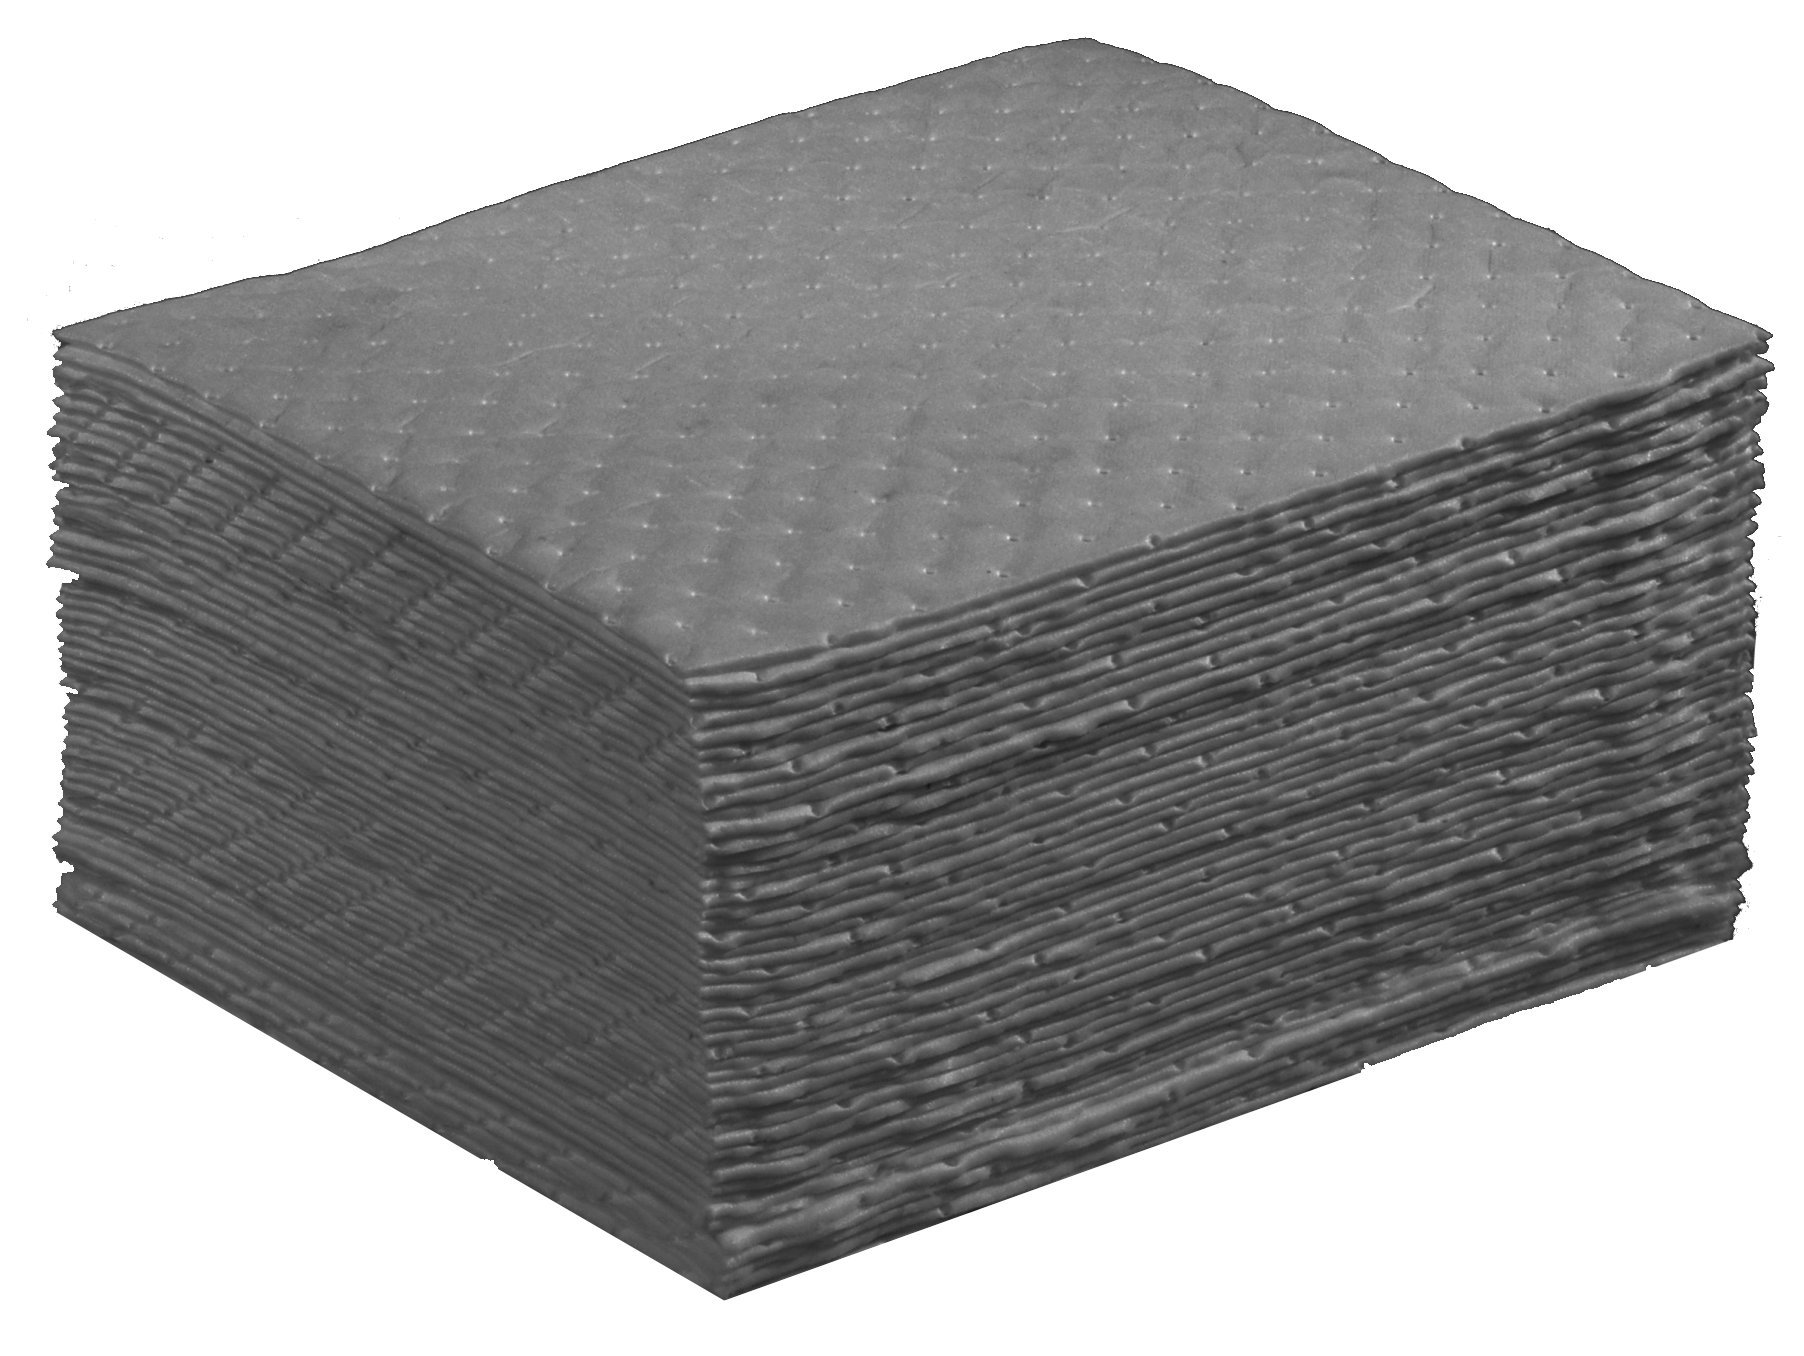 ESP 1AMGPL Airmatrix Polypropylene Heavy Weight Maintenance Universal Absorbent Laminated Pad, 18'' Length x 16'' Width, Gray (100 Per Bale) by ESP